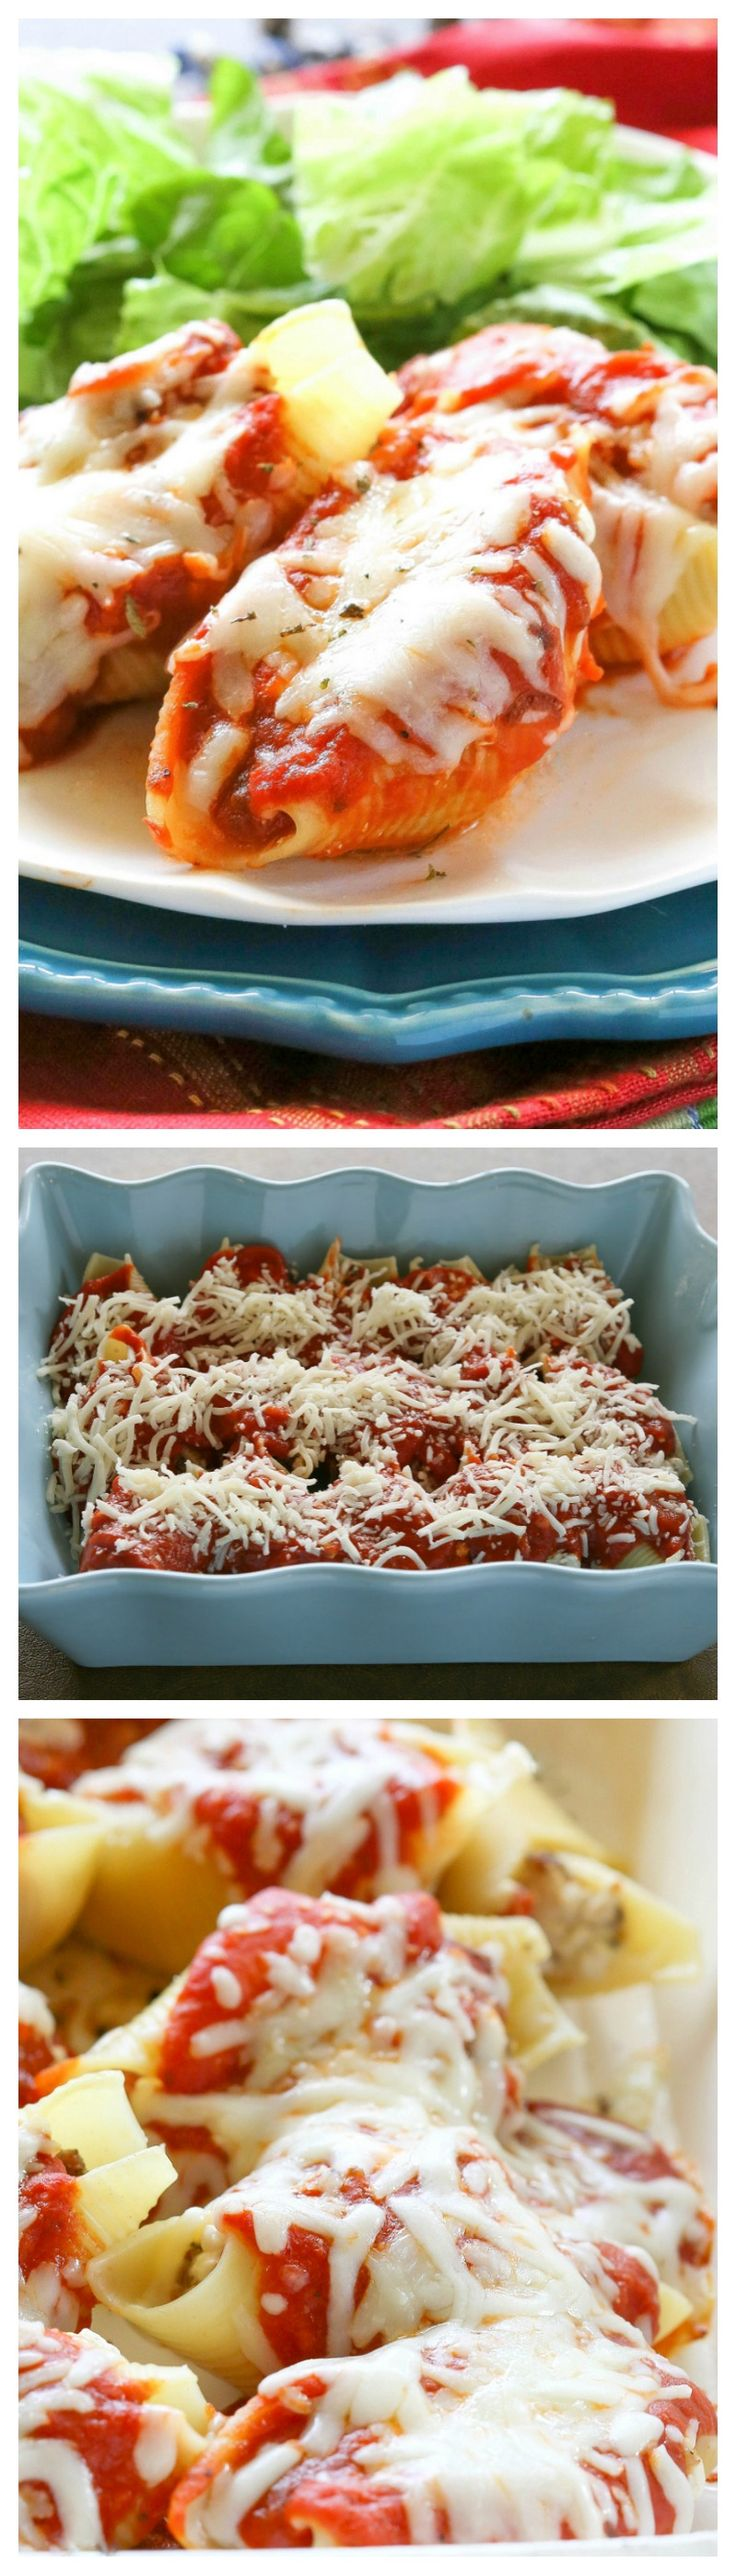 These Pizza Stuffed Shells are jumbo pasta shells stuffed with sausage, pepperoni, and cheese. They can be made ahead and frozen for later. These are a total crowd pleaser. the-girl-who-ate-everything.com